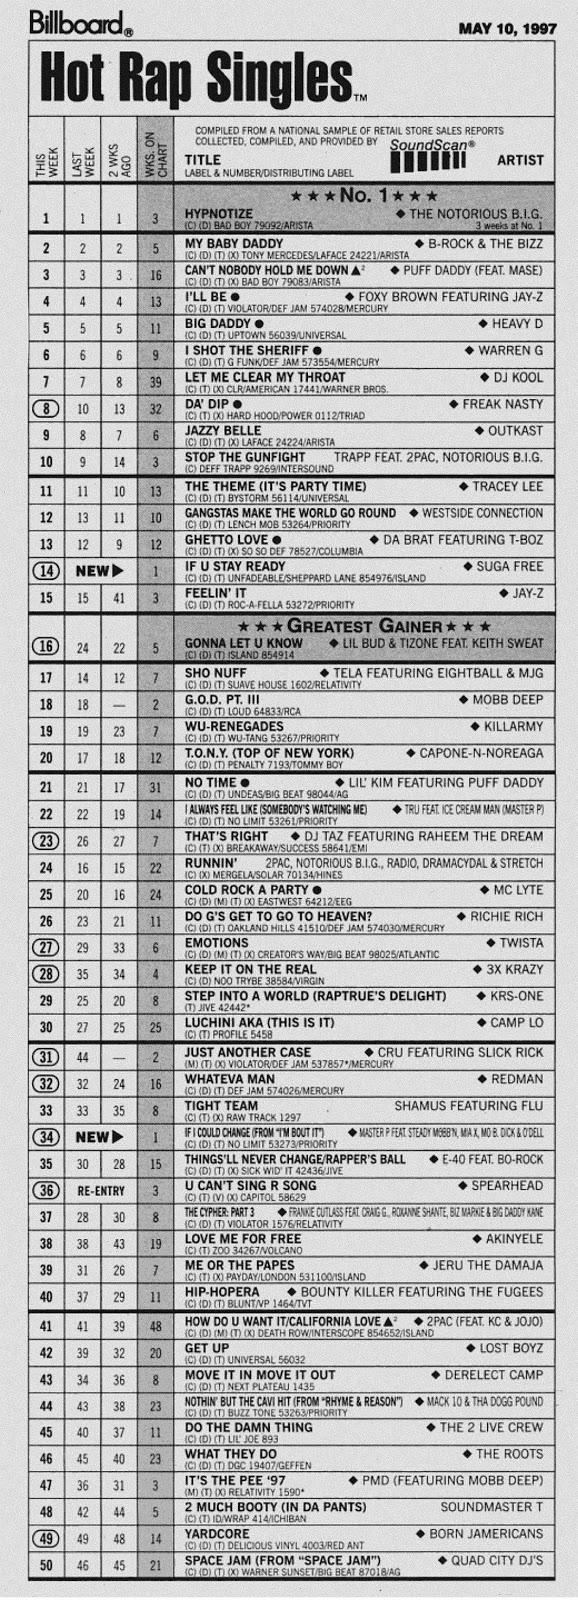 Billboard: Hot Rap Singles (May 10, 1997)